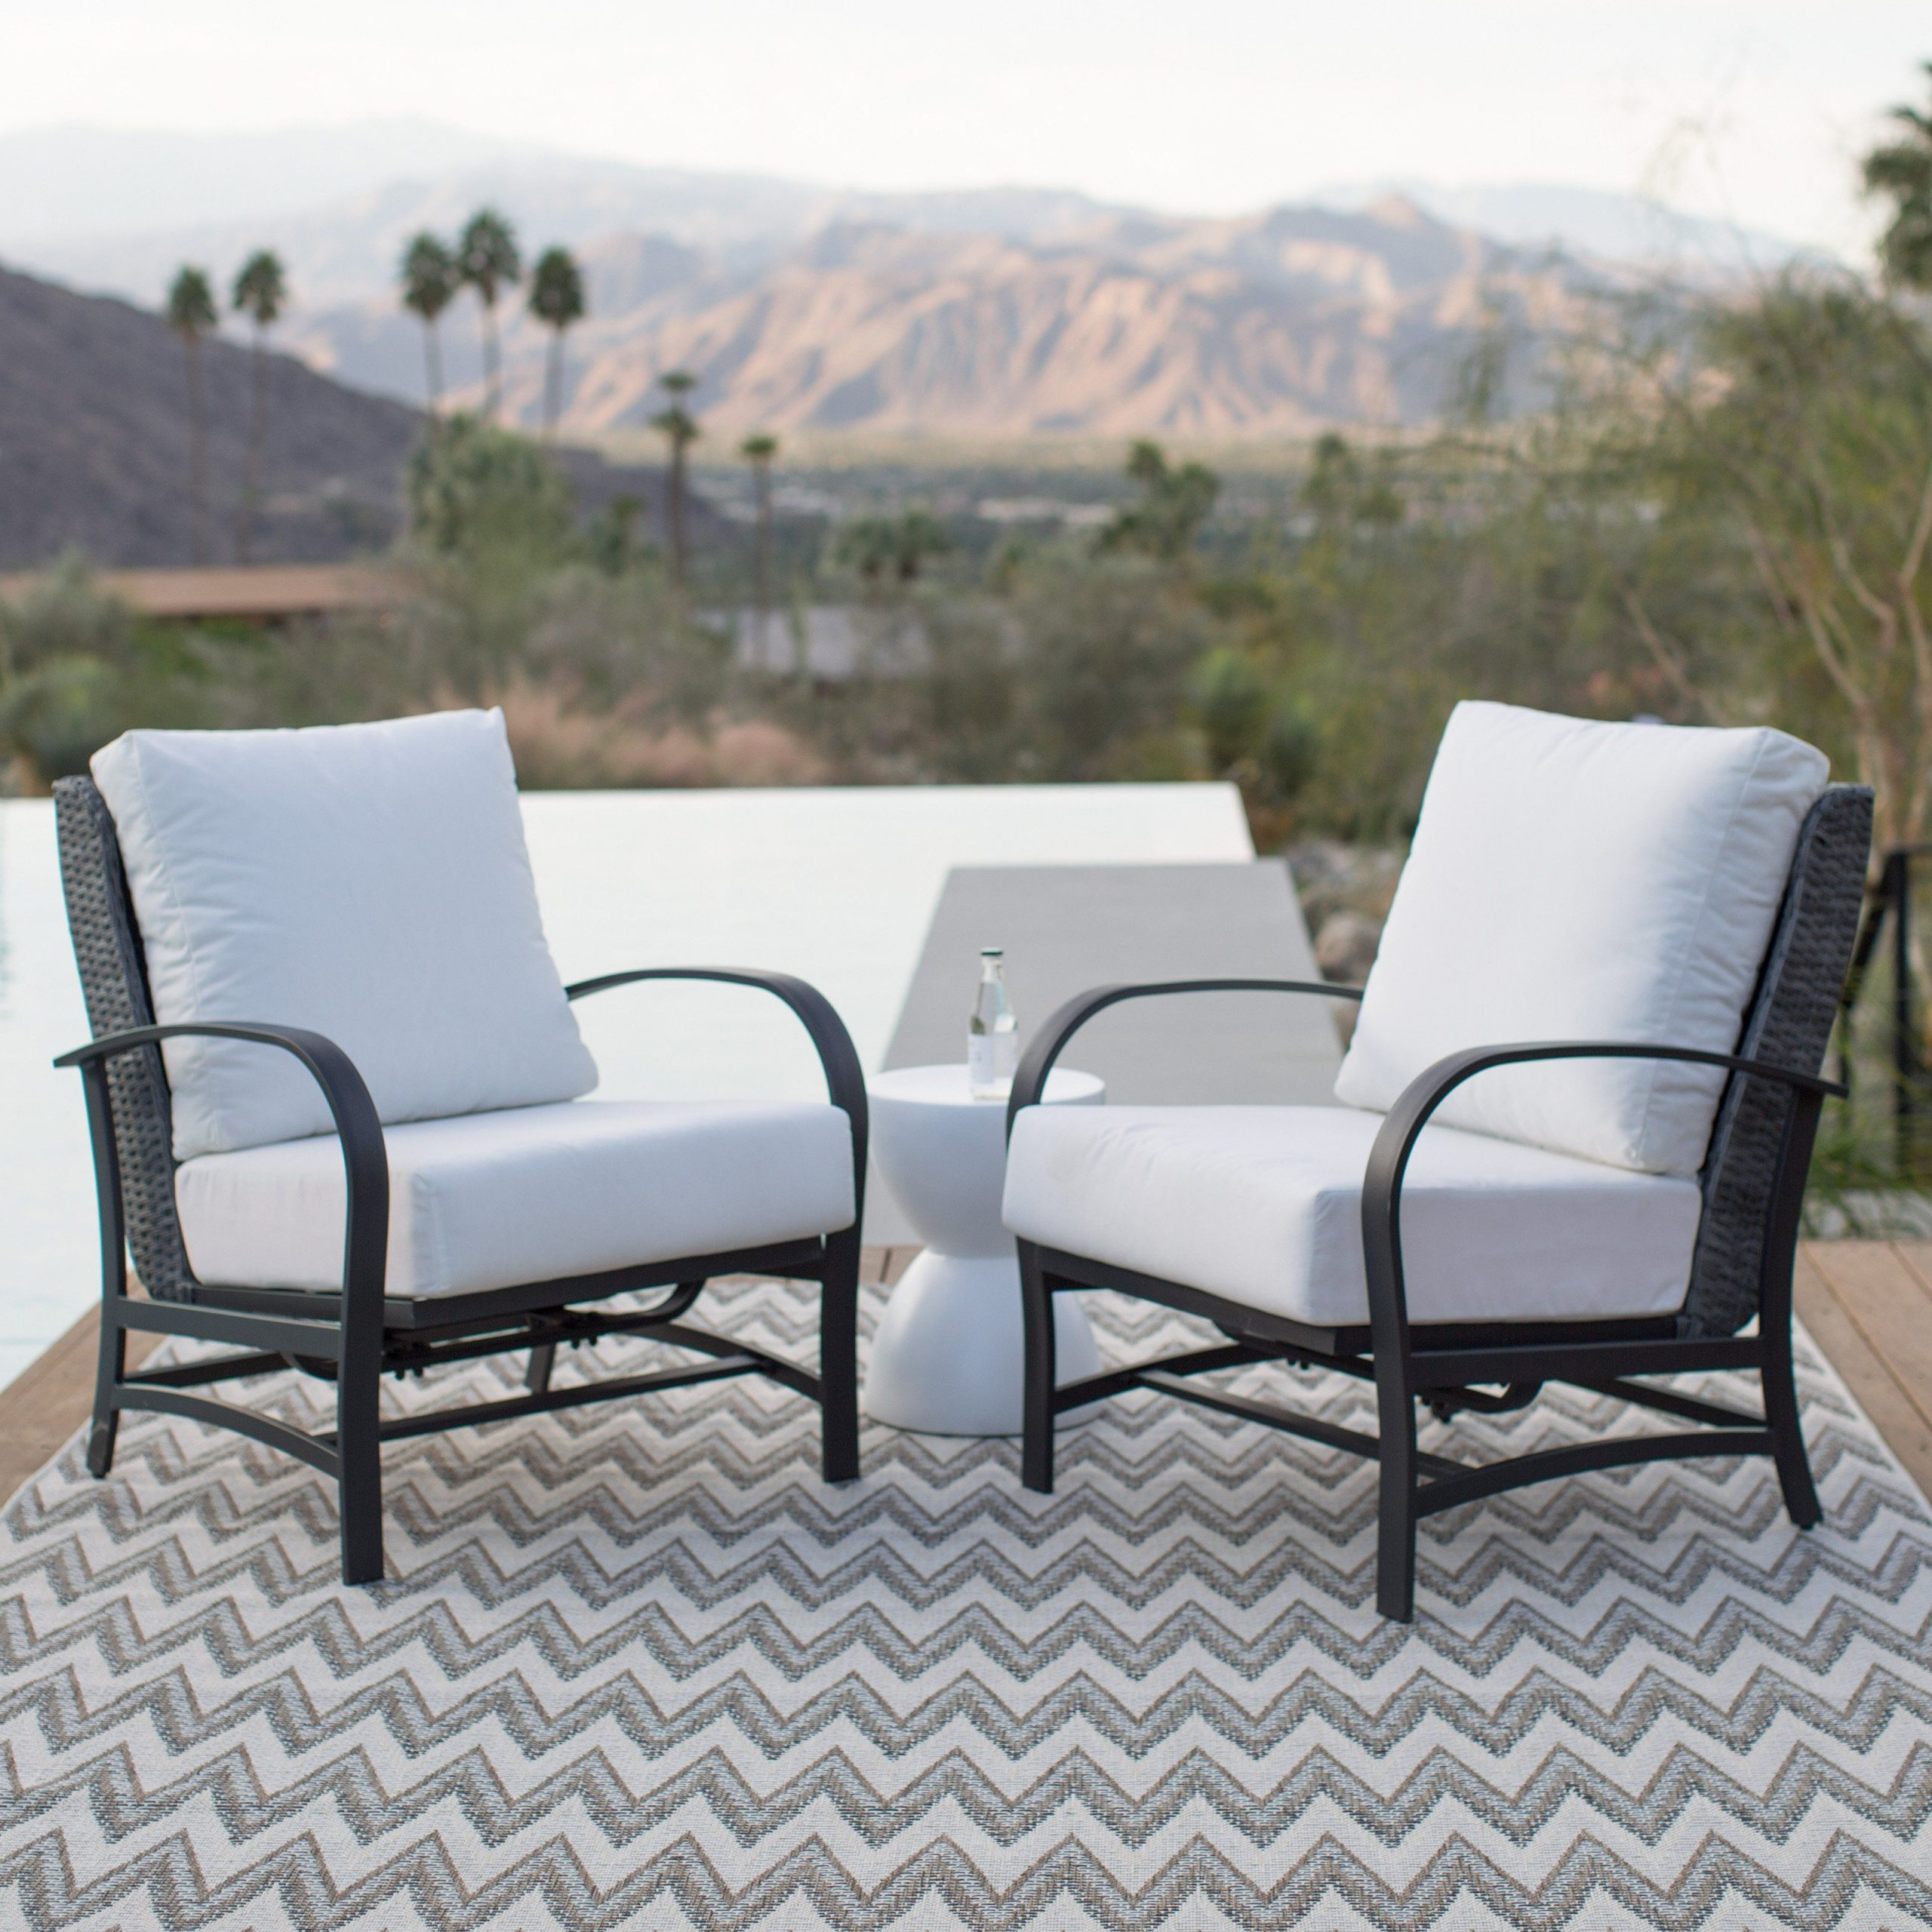 Hagler Outdoor Loveseats With Cushions With Regard To Well Liked Belham Living Augusta Stationary Rocker Lounge Chairs – Set (View 12 of 25)